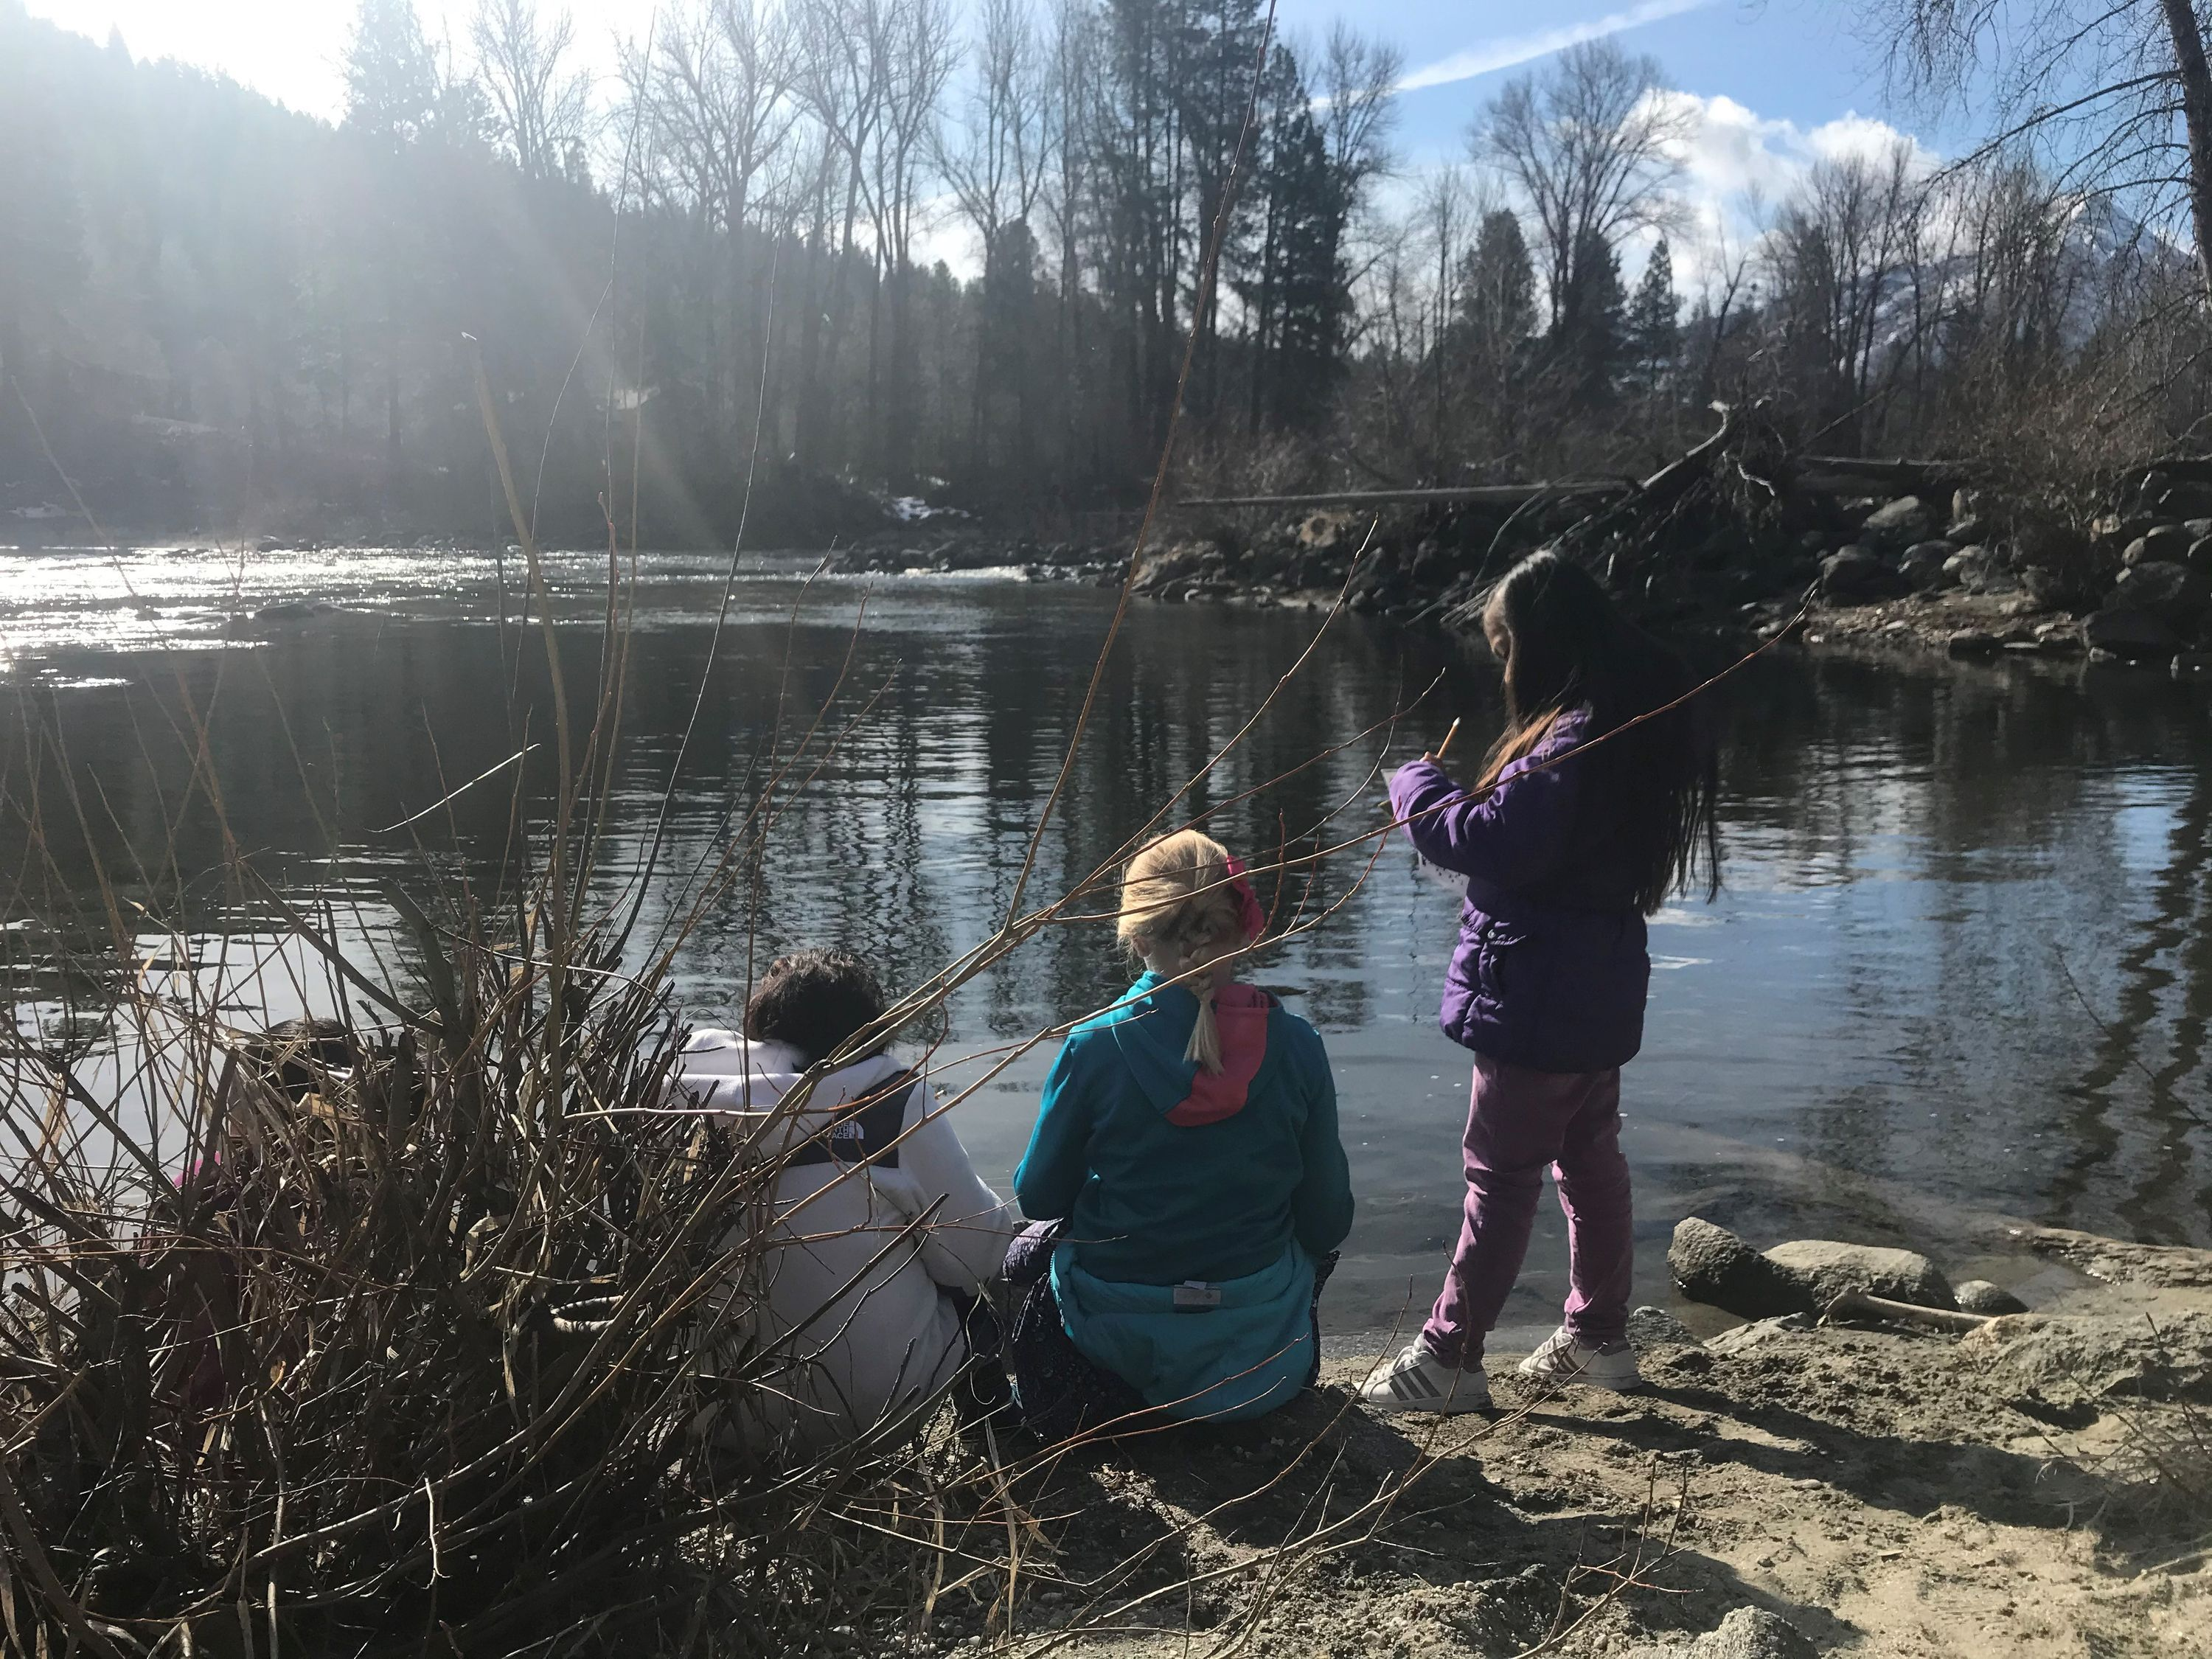 3/27/2020 Field Notes: Newsletter of the Wenatchee River Institute